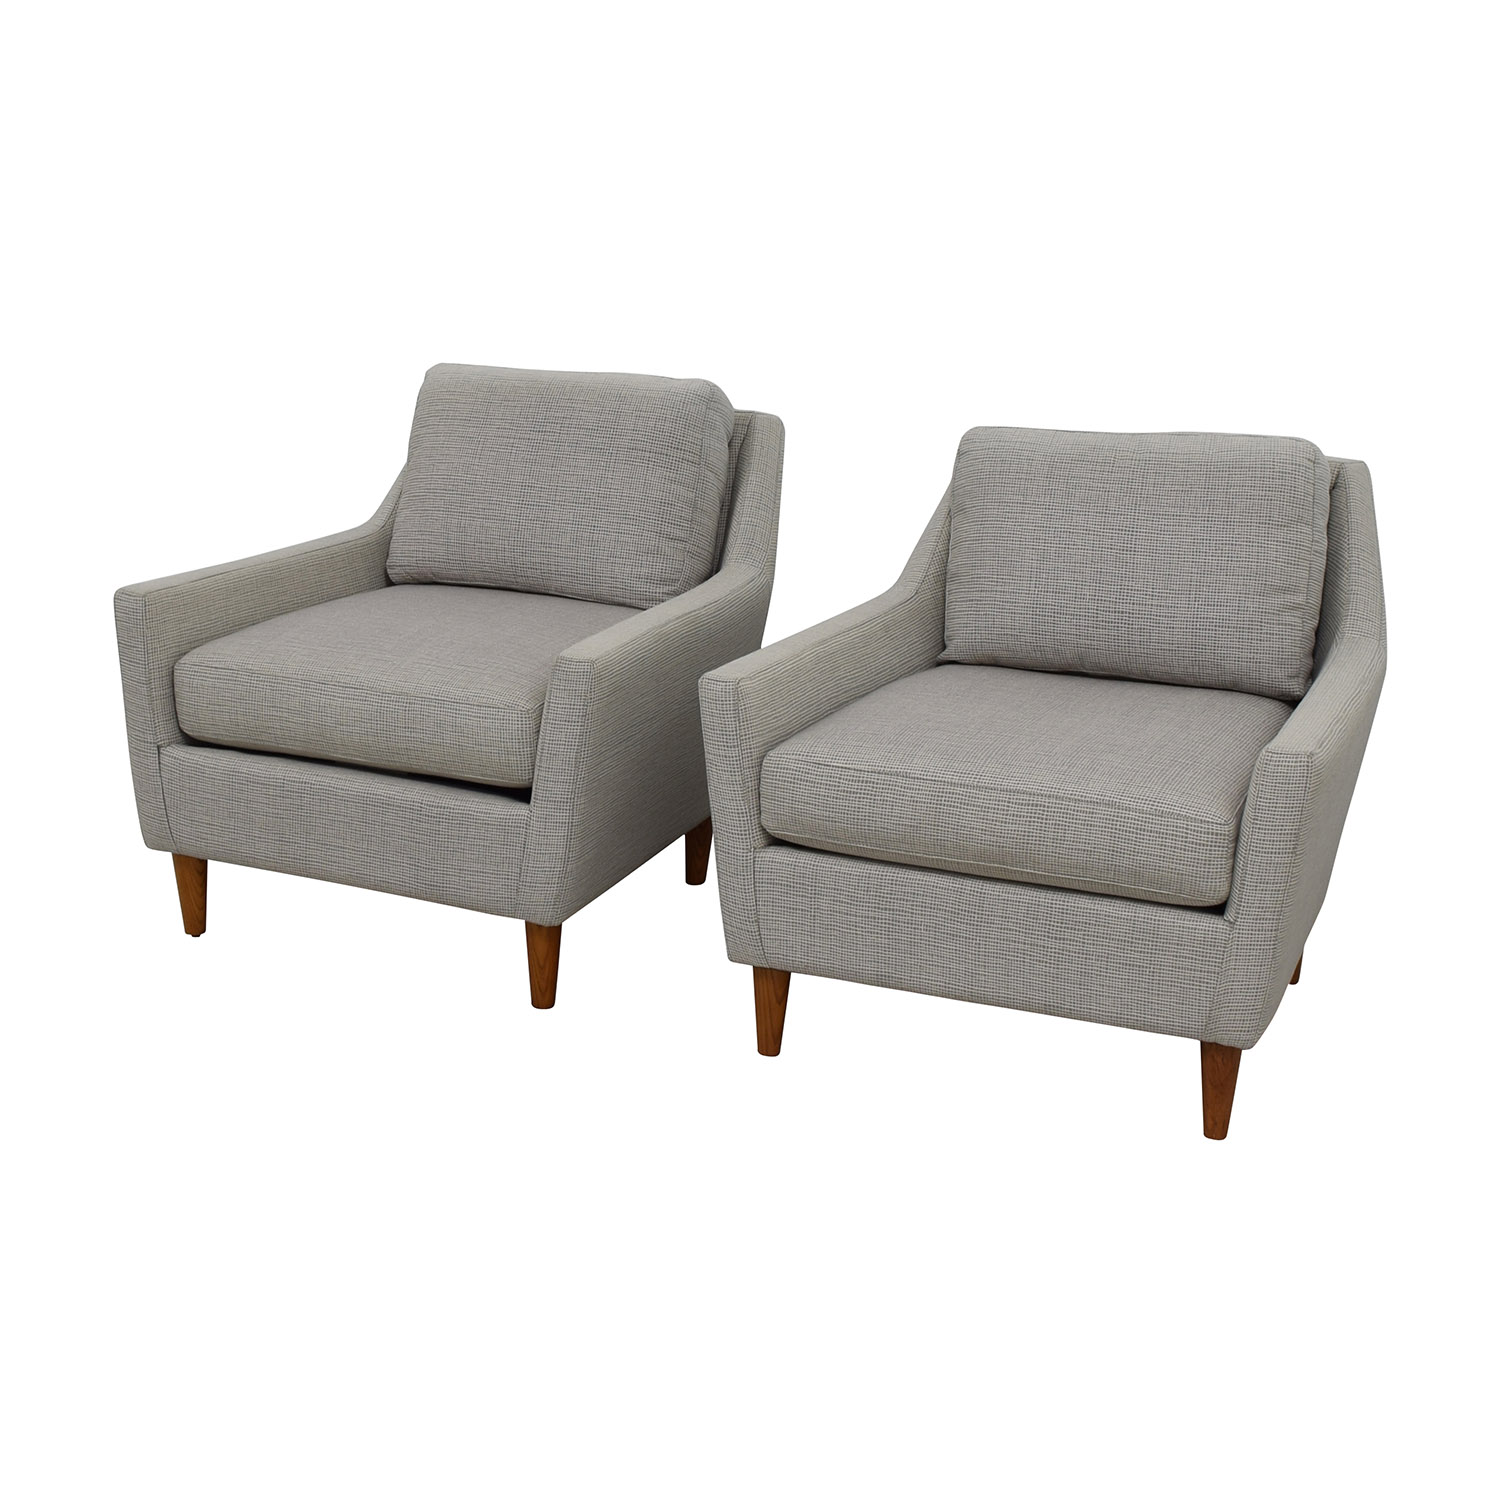 west elm everett chair lounge material 60 off grey arm chairs shop online